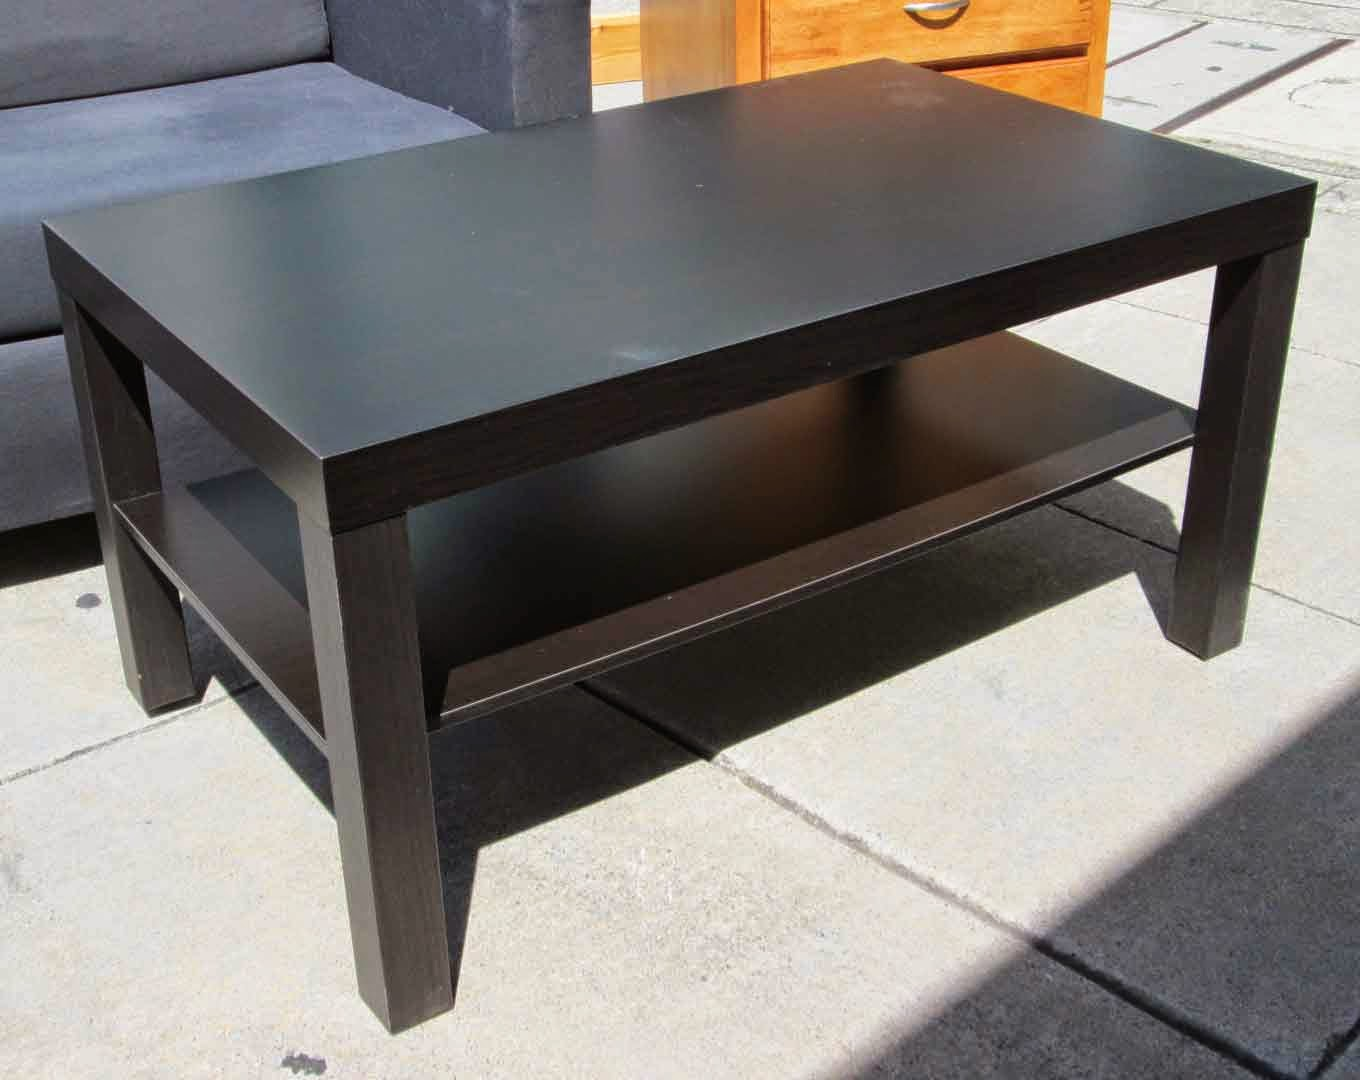 Http Uhurufurniture Blogspot Com 2014 04 Black Ikea Coffee Table Html